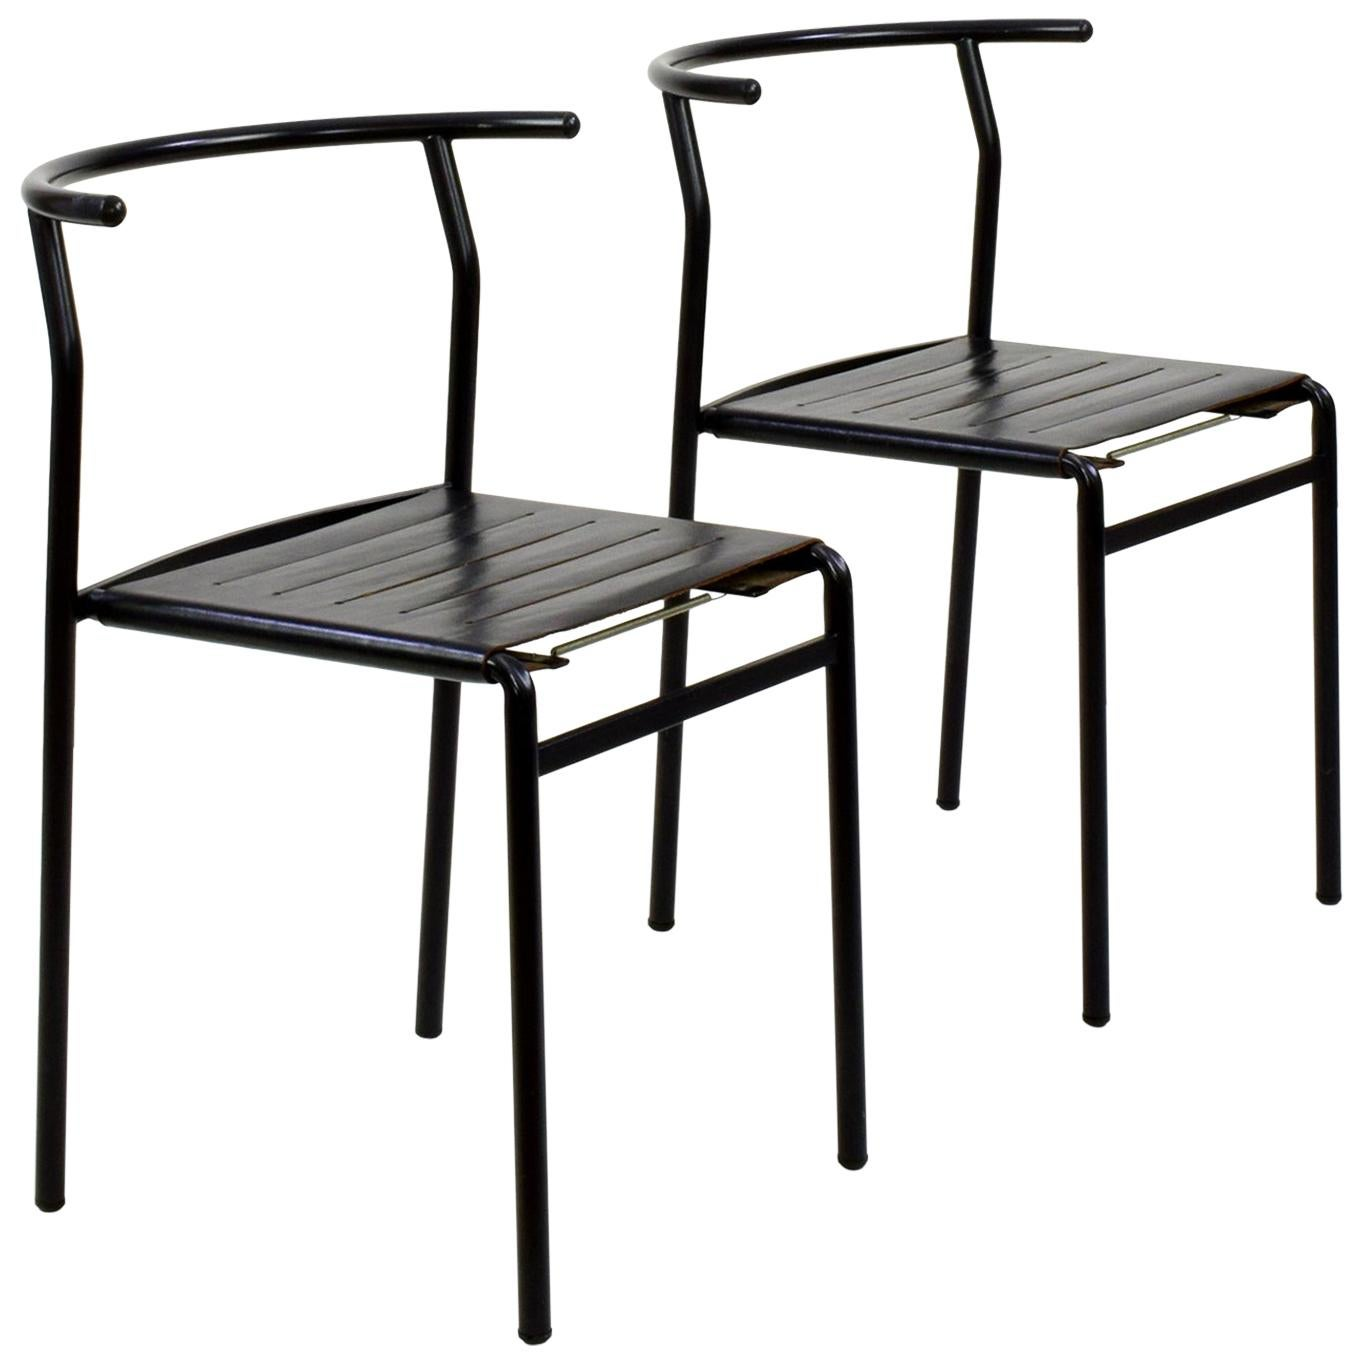 Philippe Starck Two Leather 'Café Chairs' for Baleri Italia, 1984, Café Costes